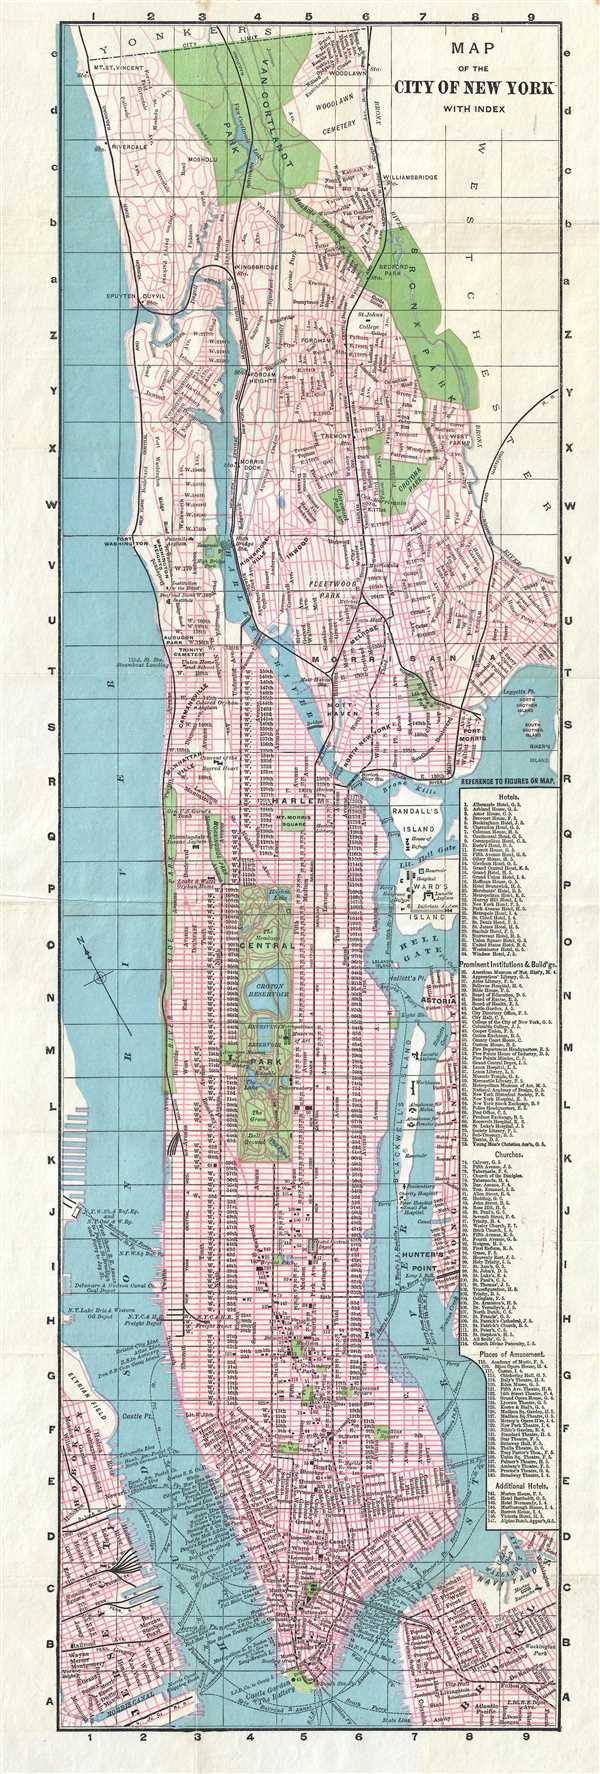 Map of the City of New York with Index.